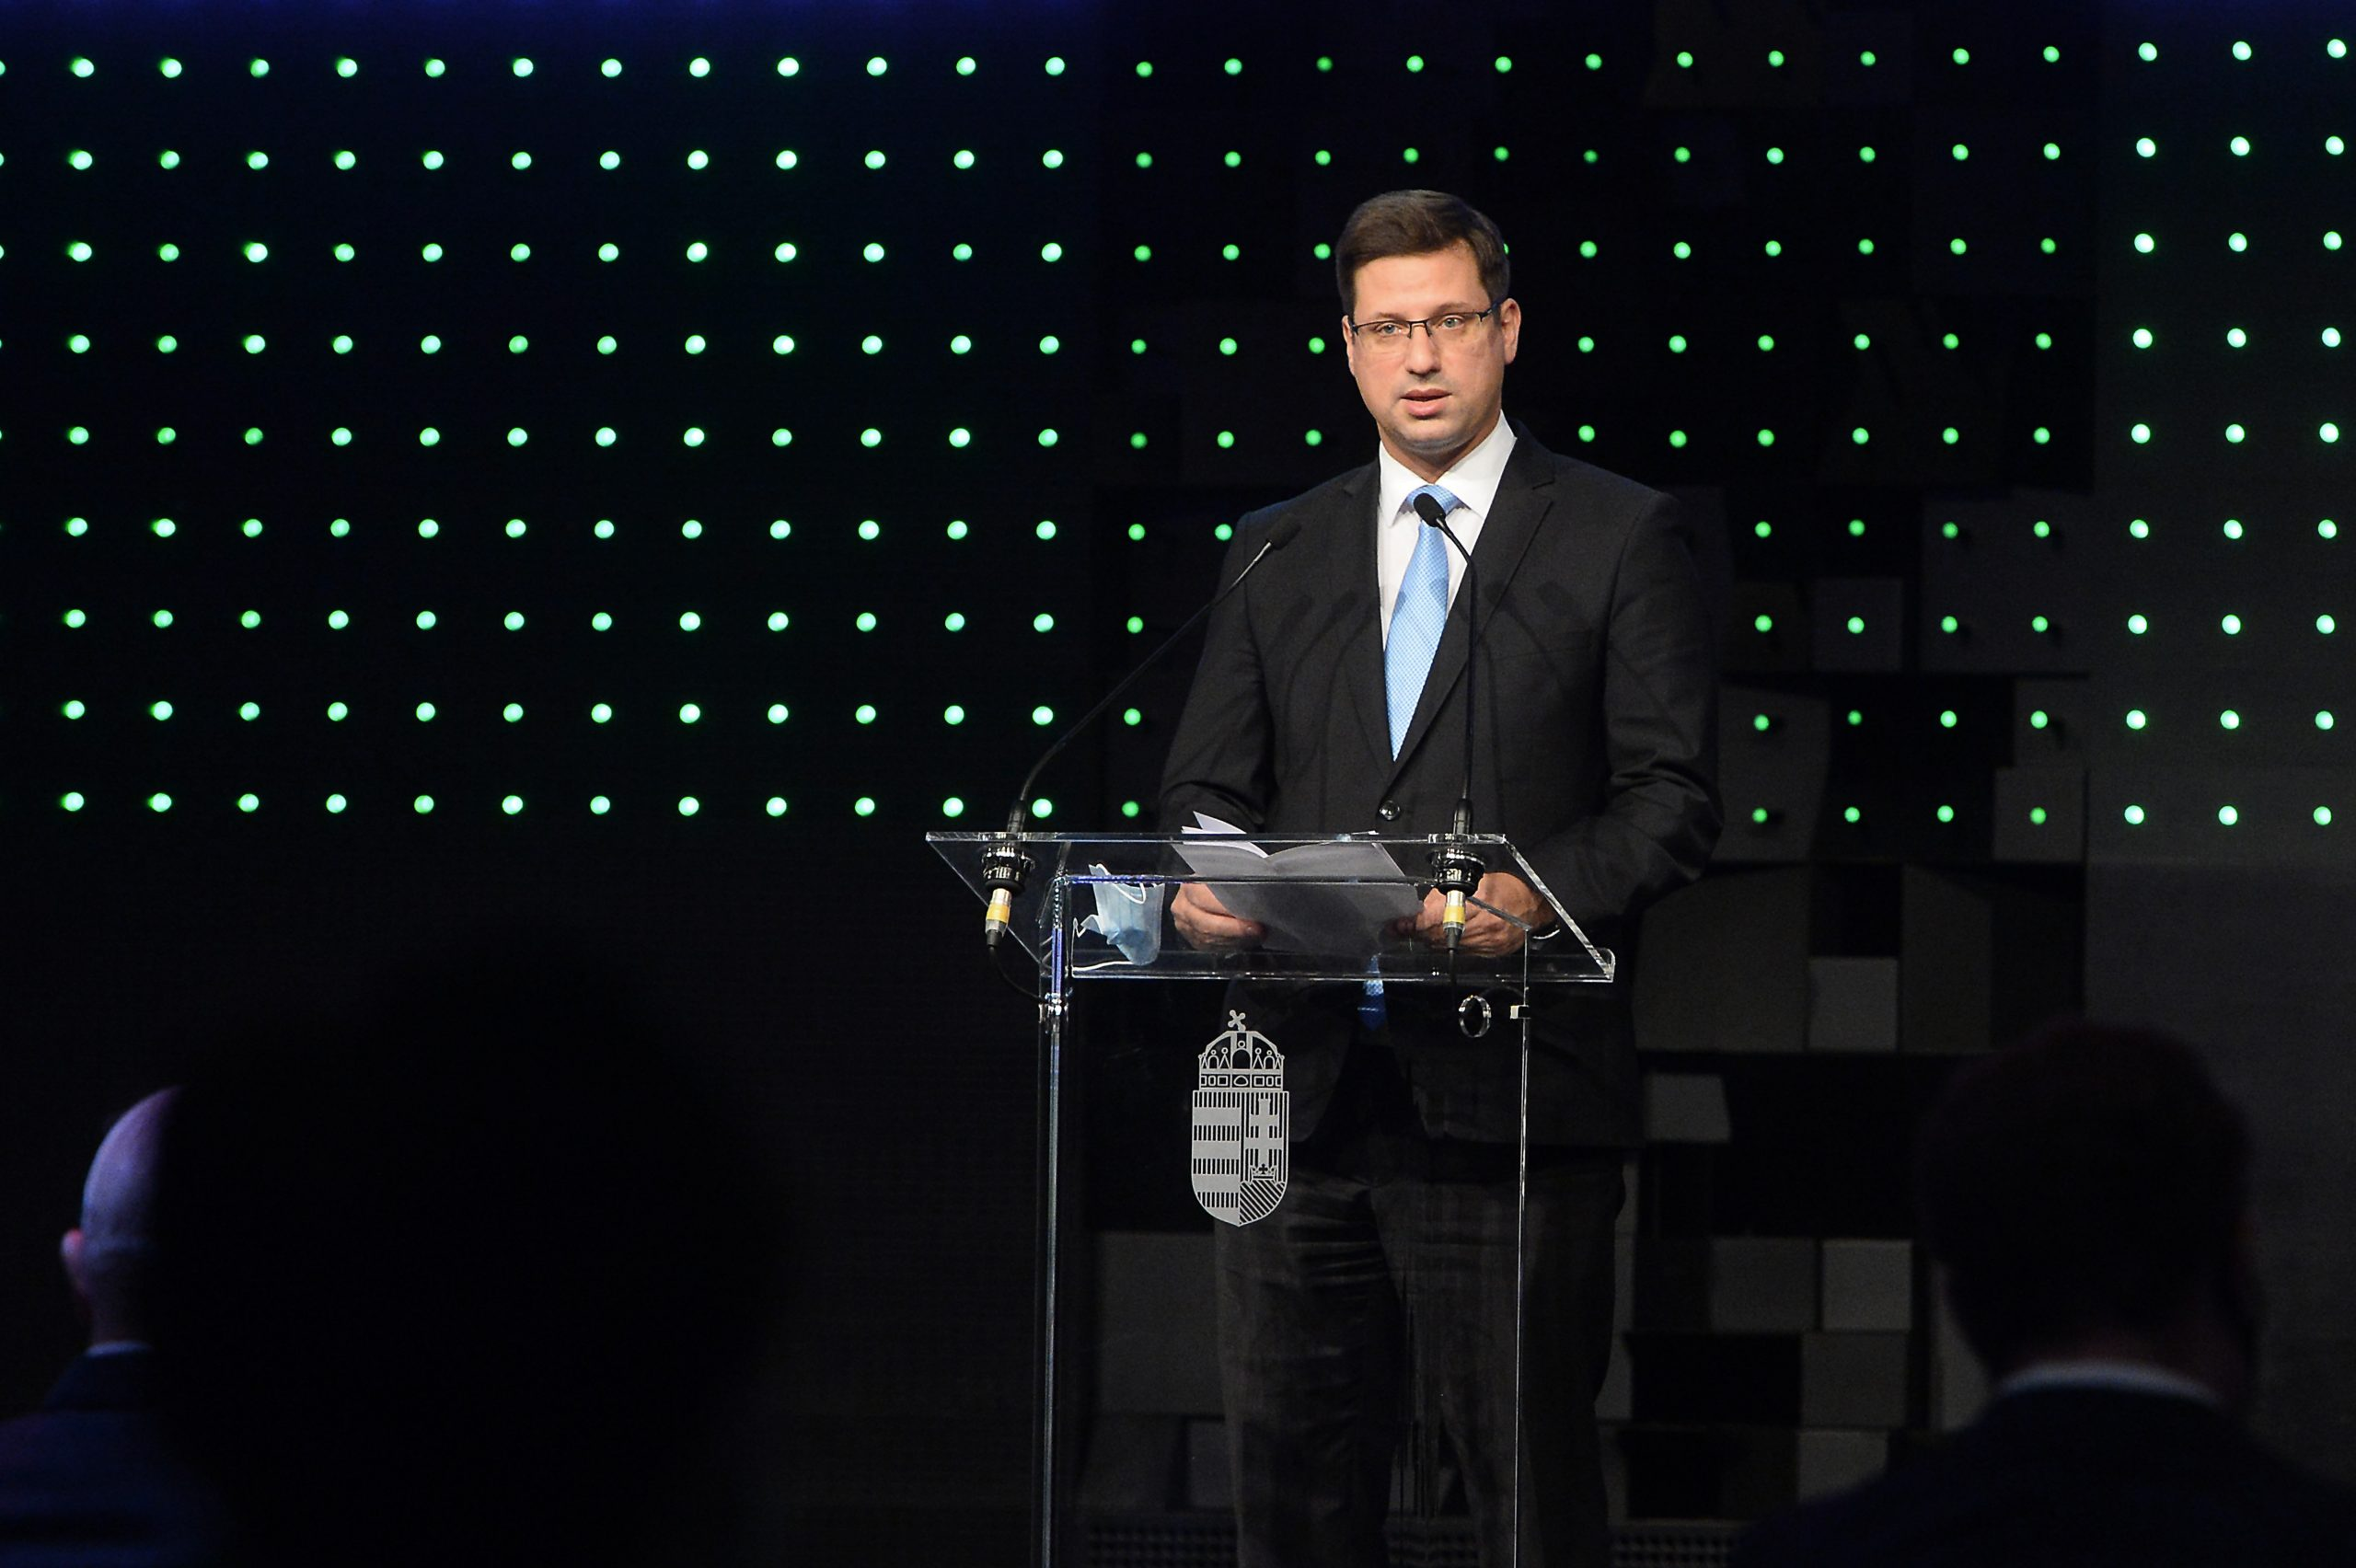 October 23 – PMO Head Gulyás: 'We Now Have Our Freedom but Need to Preserve It' post's picture